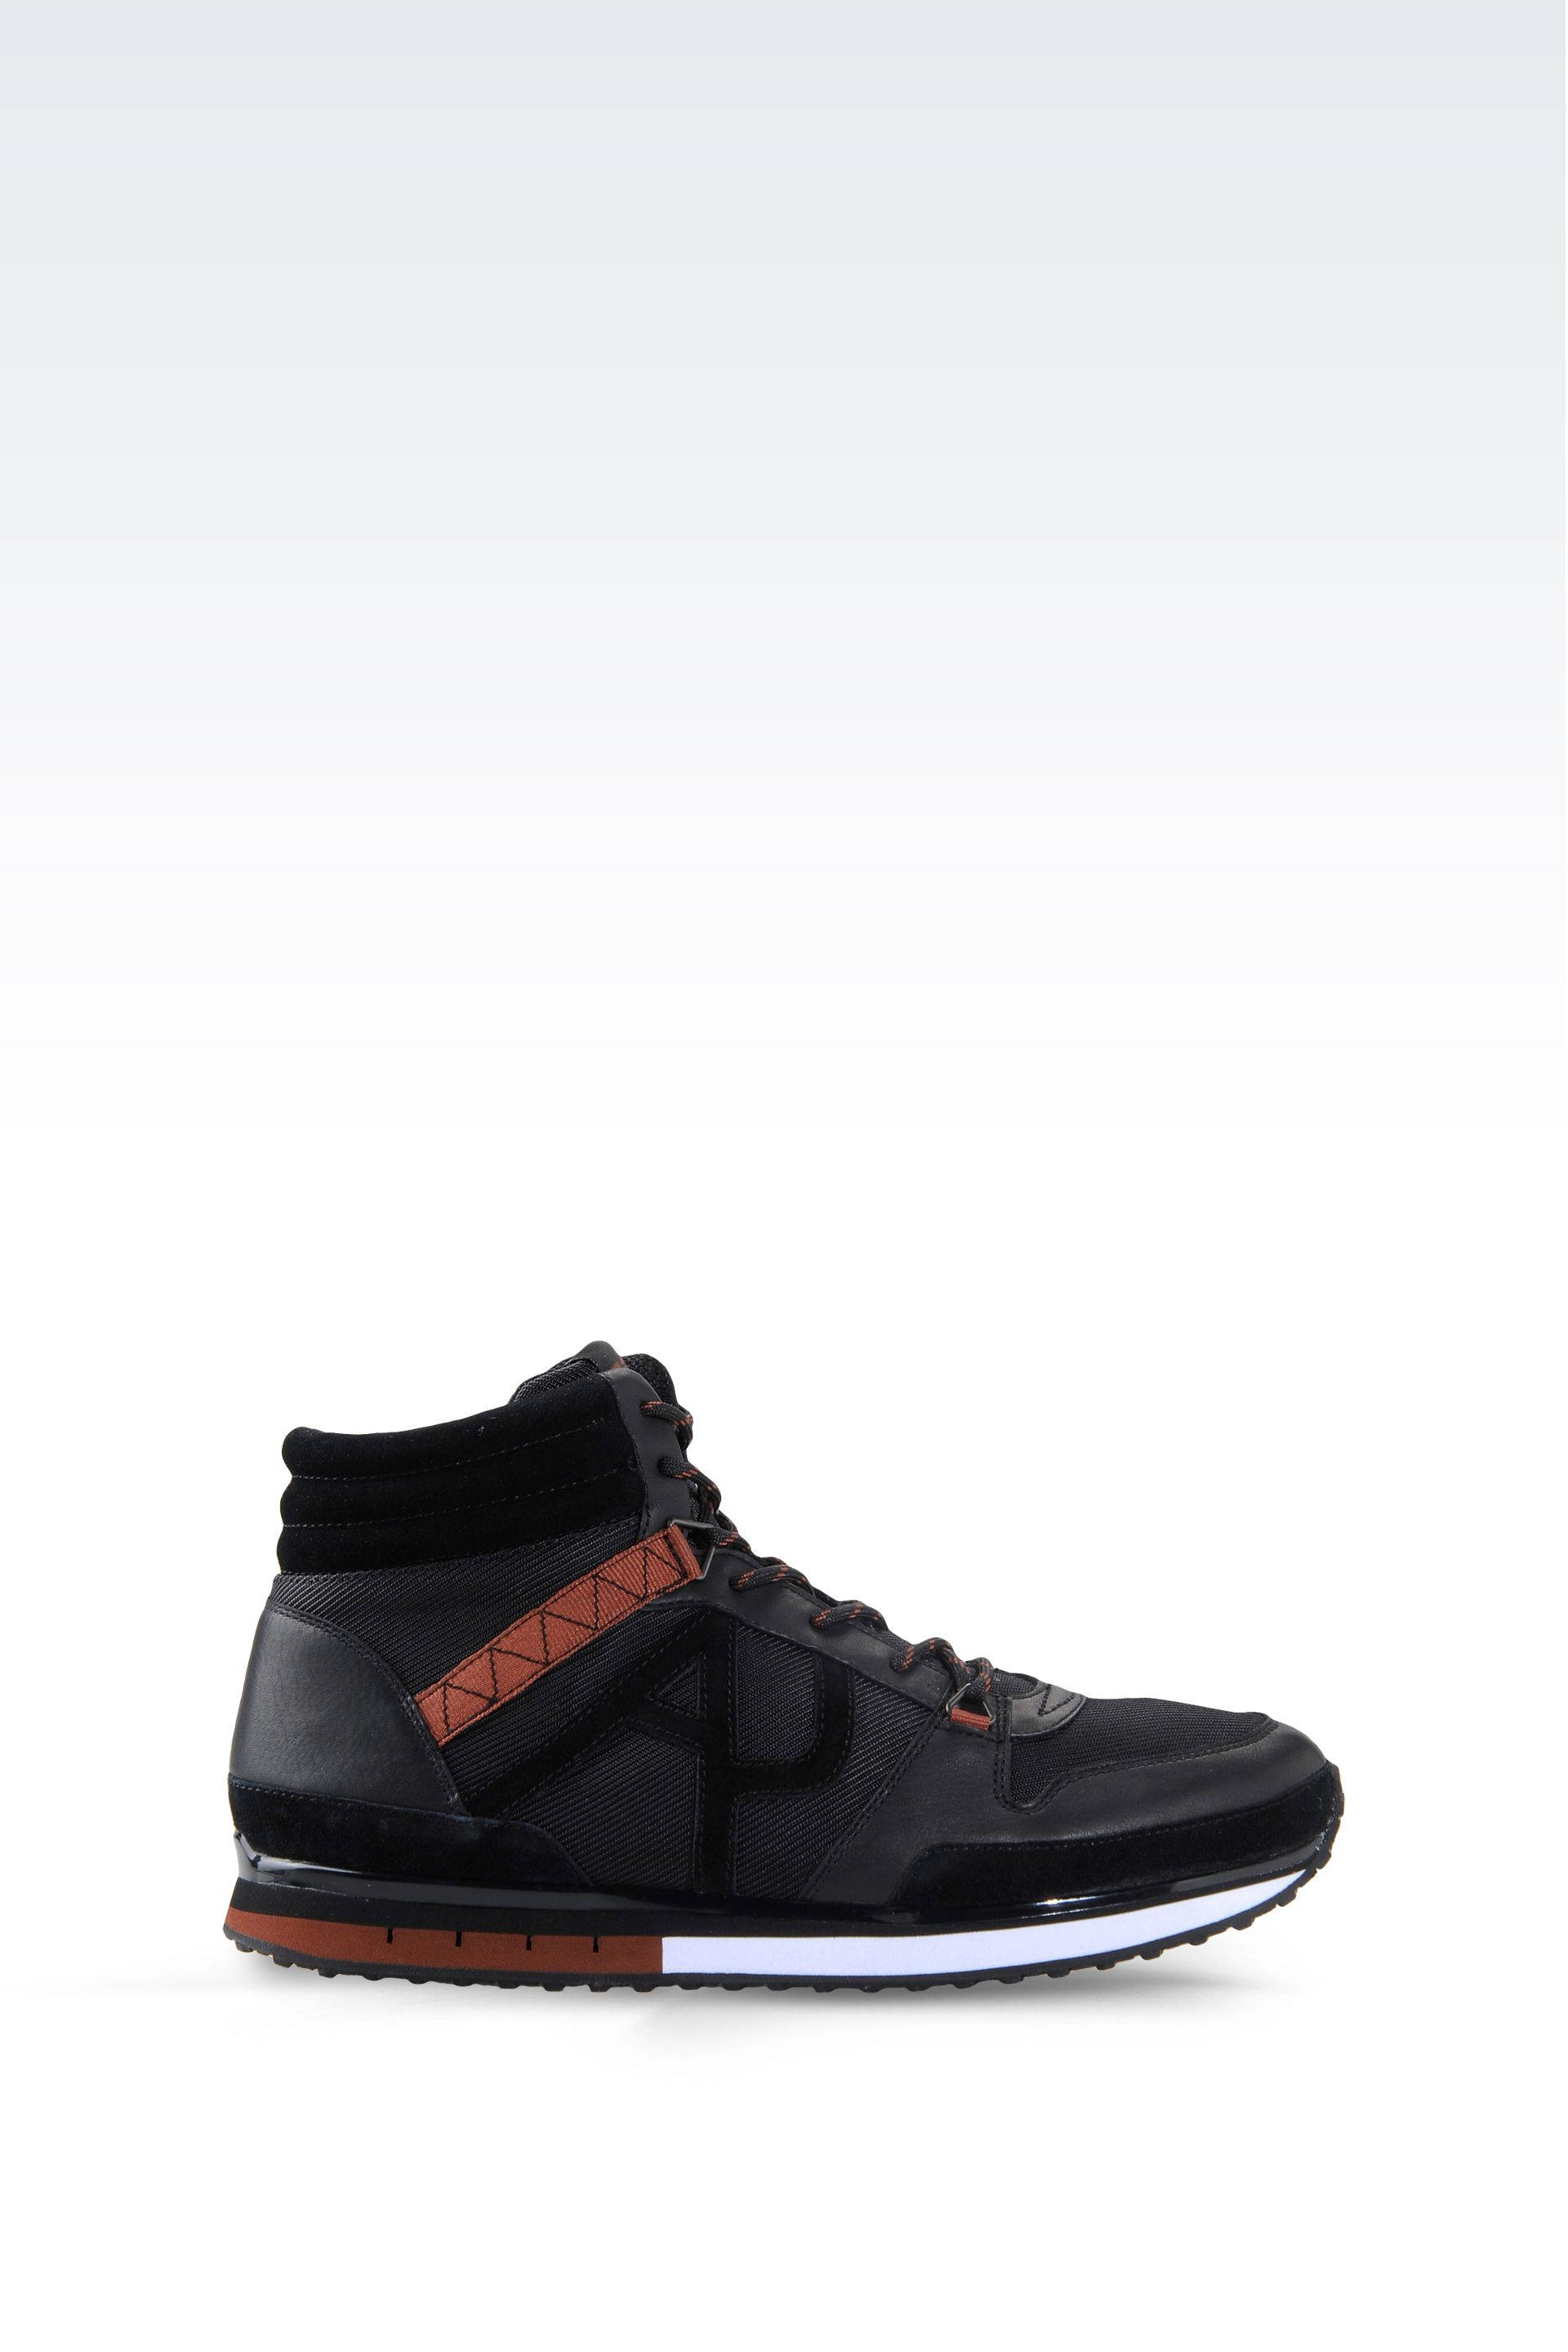 armani jeans high top sneaker in suede and technical fabric in black for men lyst. Black Bedroom Furniture Sets. Home Design Ideas